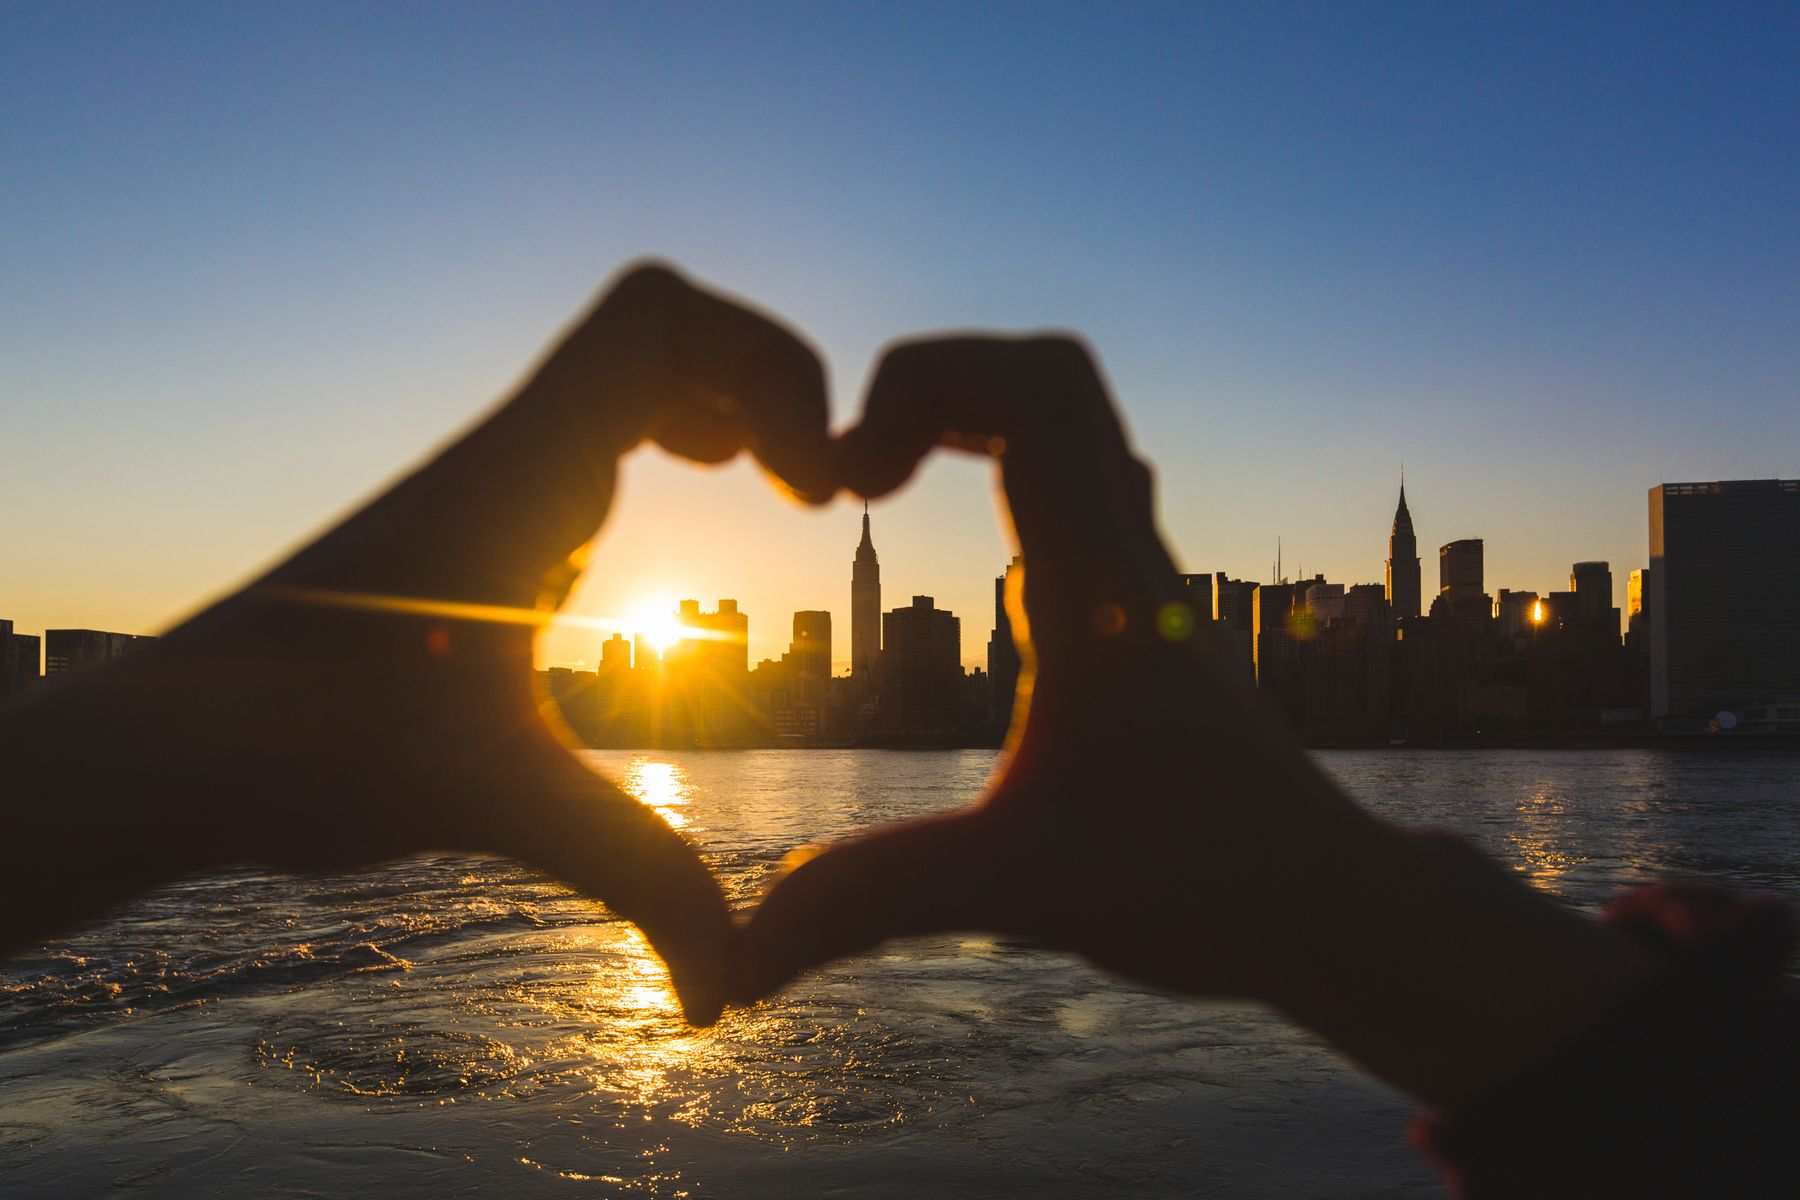 person making a heart shape with their hands with a view of the New York skyline at sunset